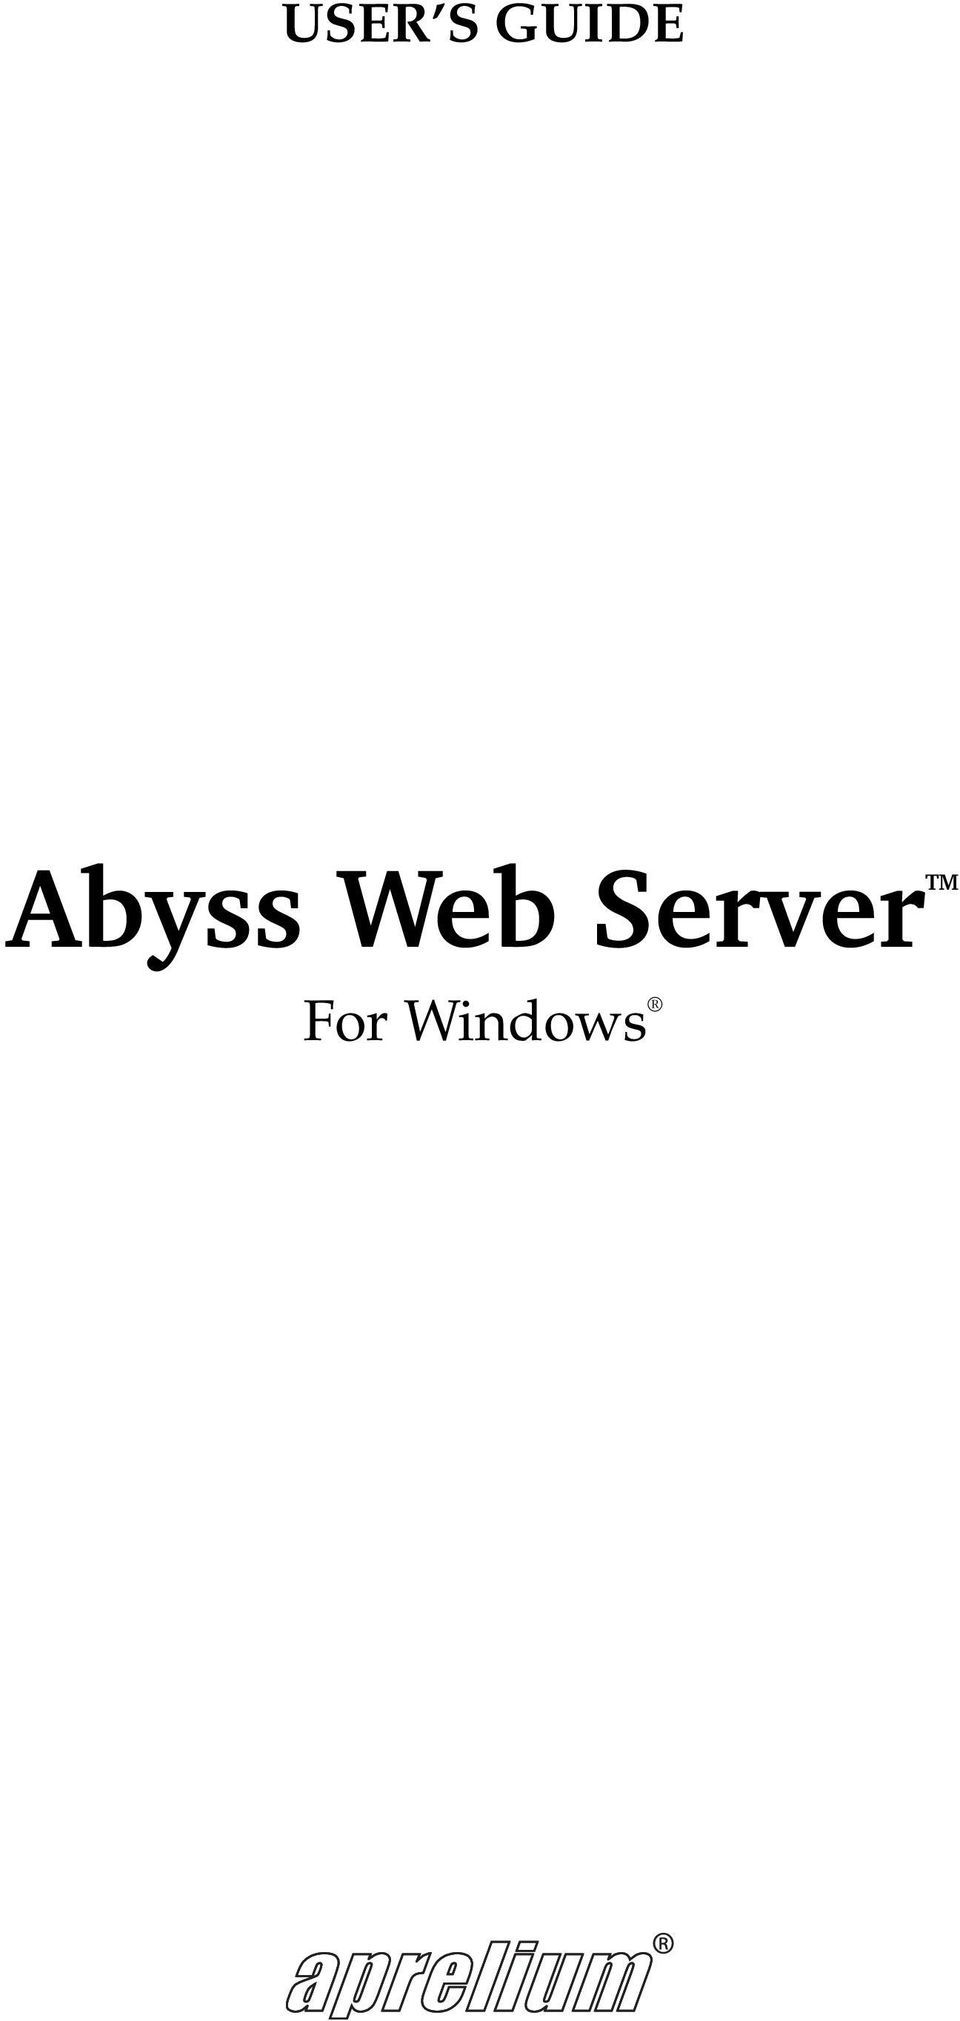 USER S GUIDE Abyss Web ServerTM - PDF